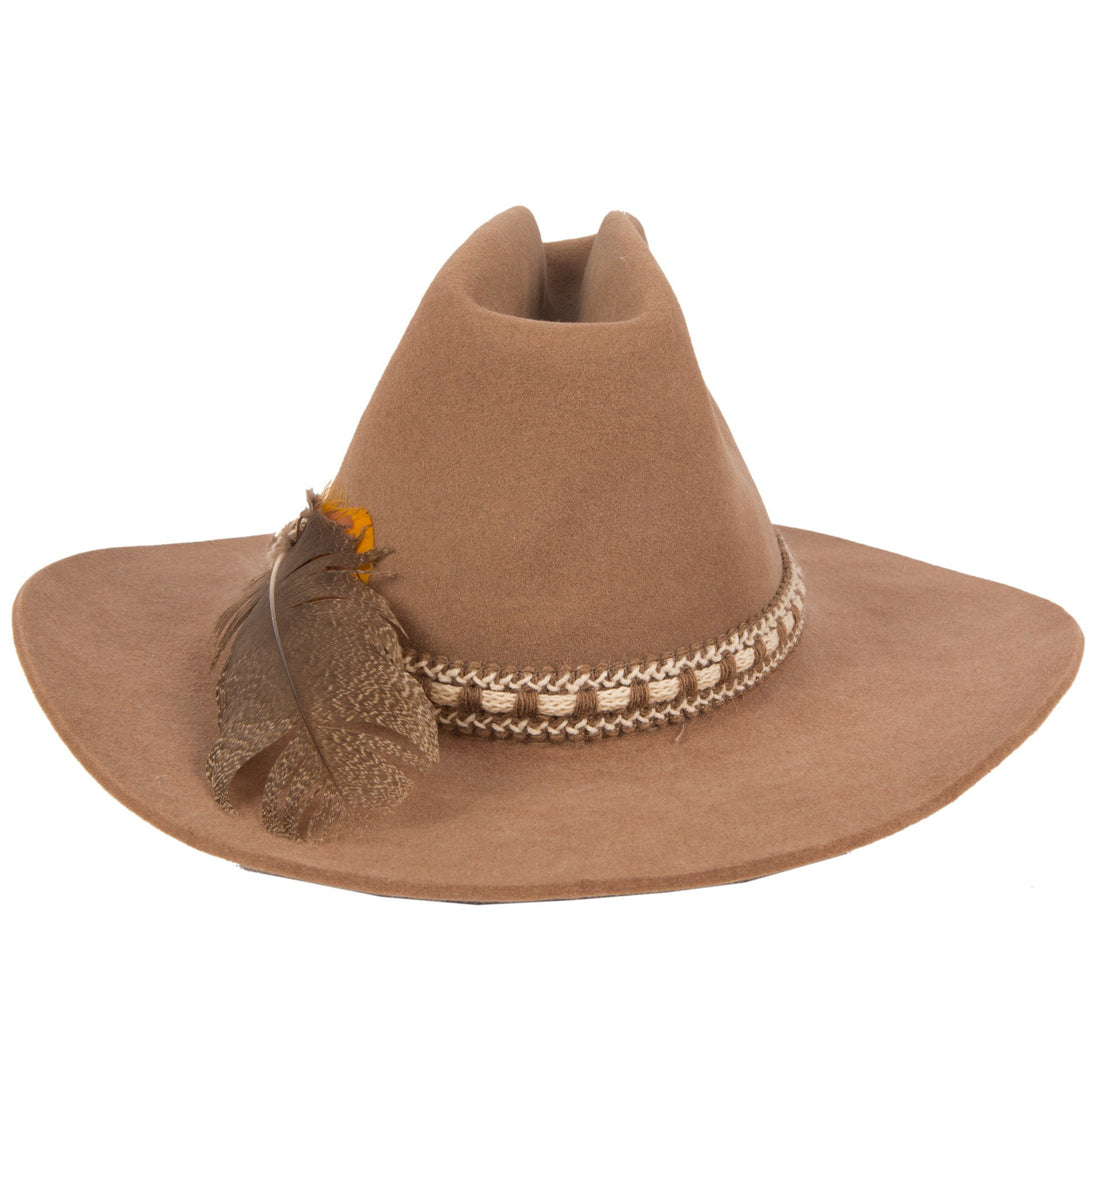 Vintage Brown Felt Bailey Hat w/ Feather Hat Band - Vintage - Iron and Resin